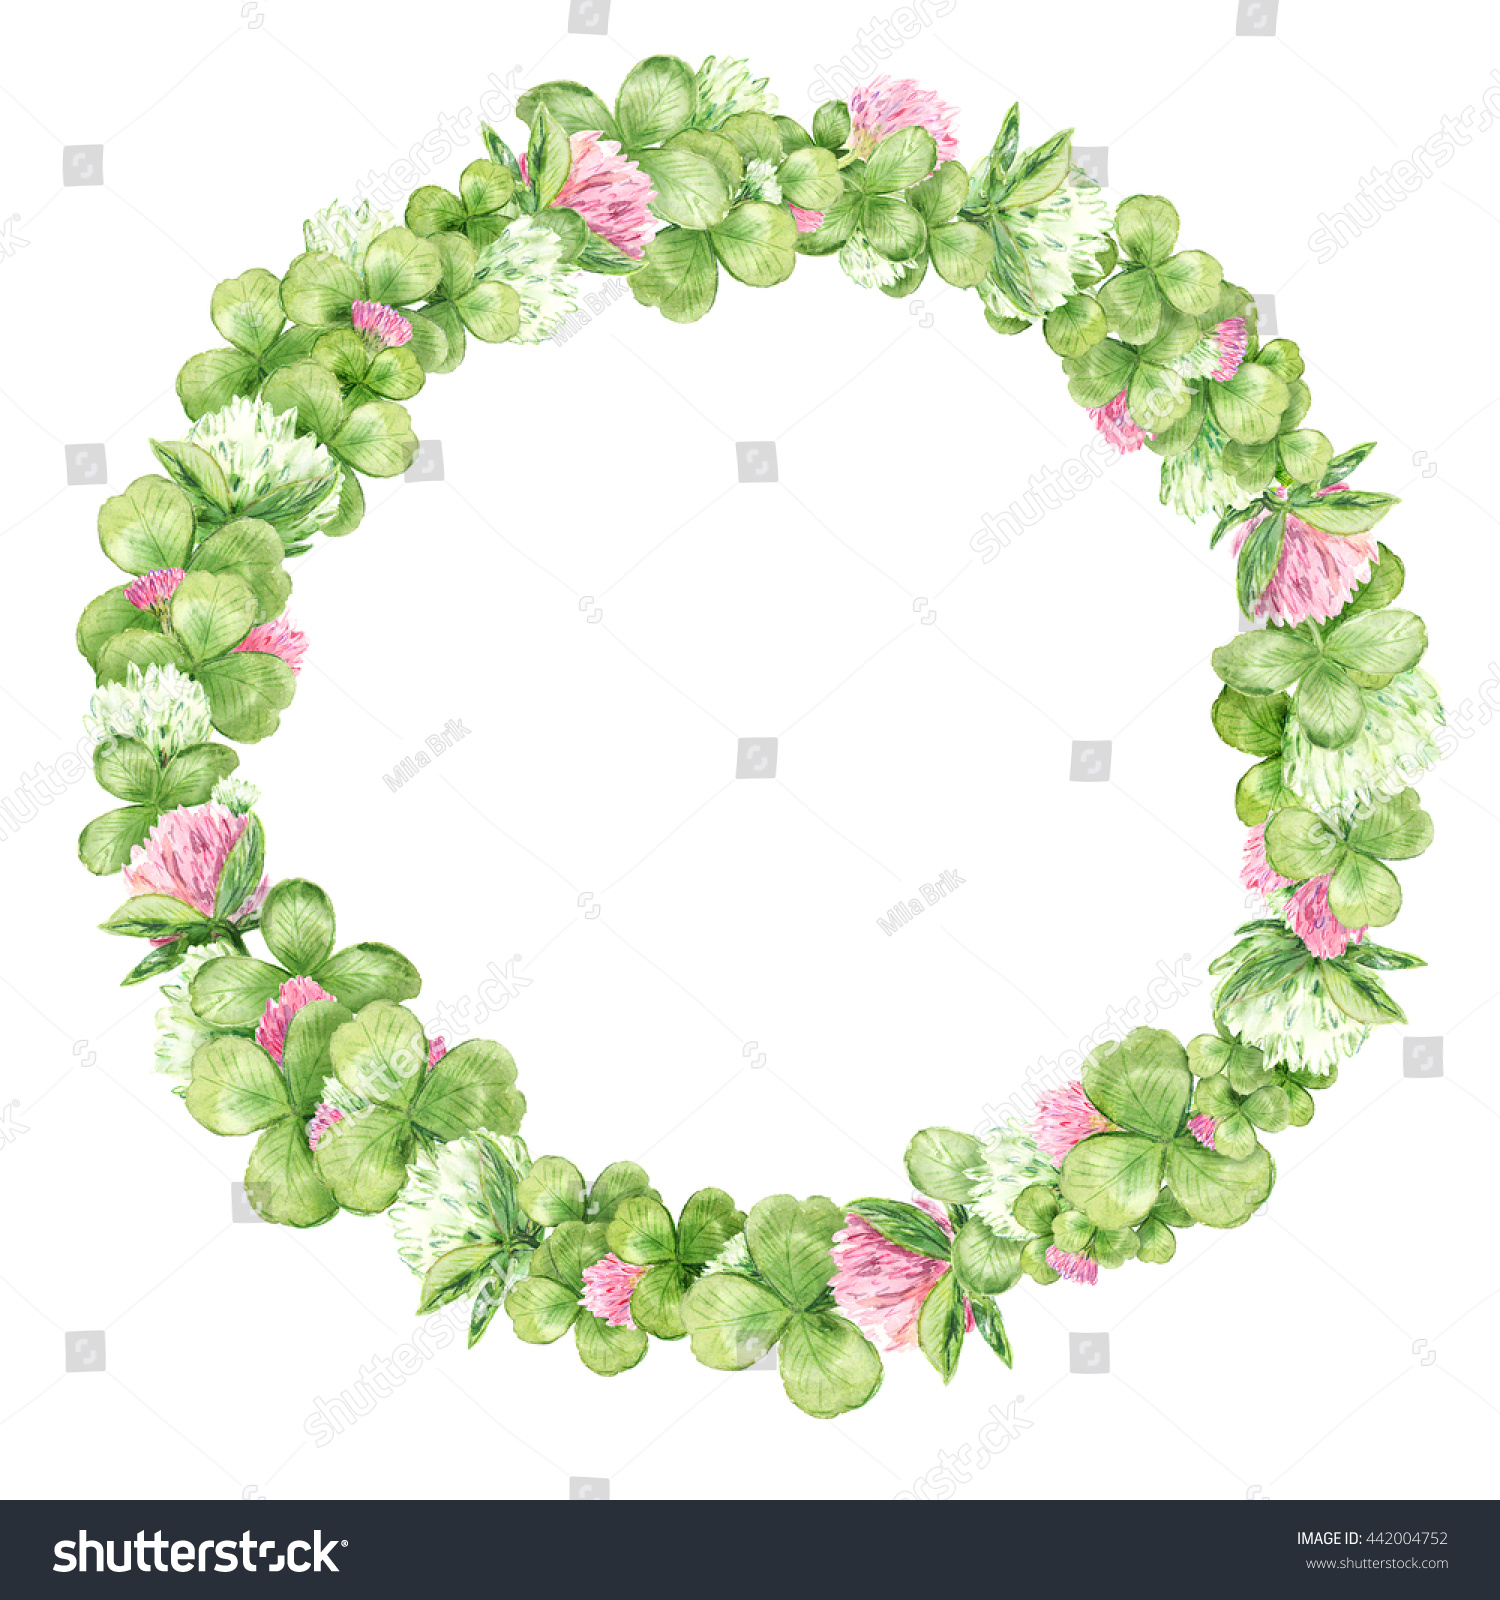 Watercolor Wreath Pink White Flowers Clovers Stock Illustration